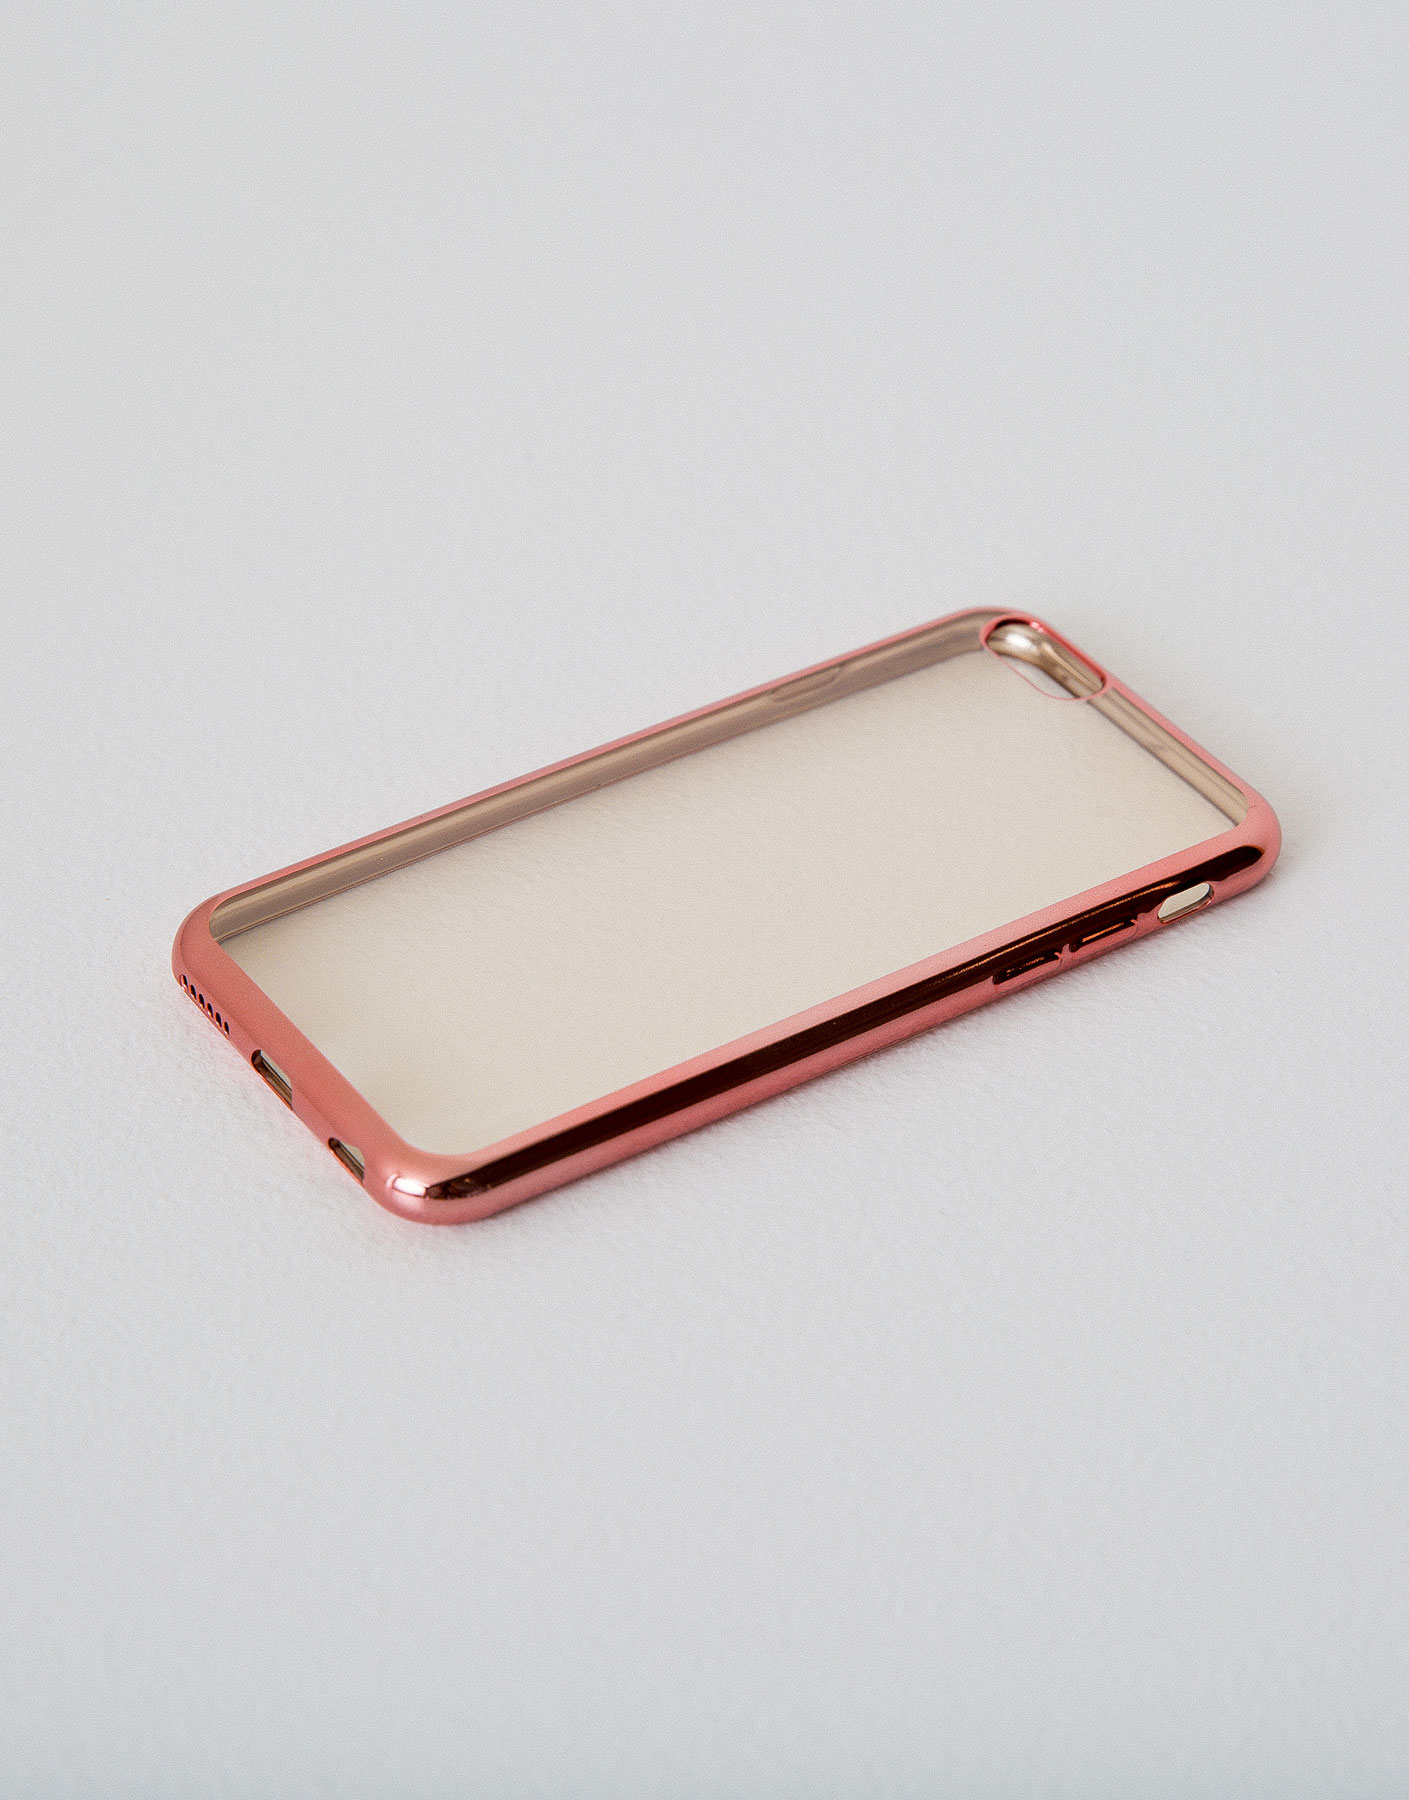 Metallic edge iphone case